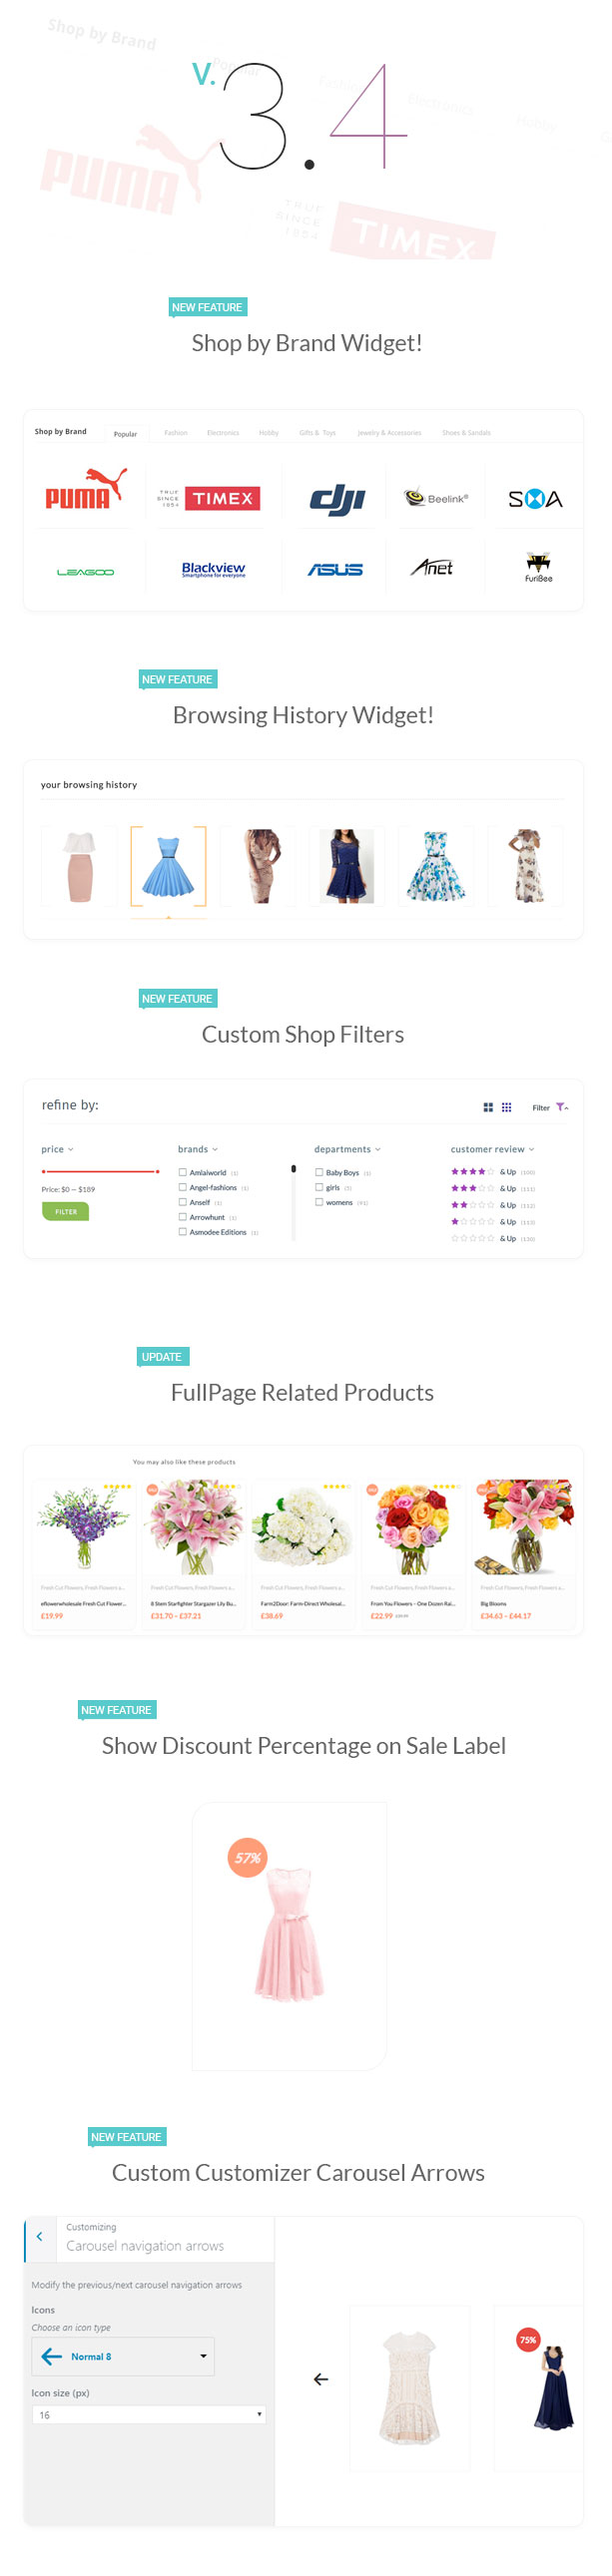 Kingdom - WooCommerce Amazon Affiliates Theme - 1 Kingdom - WooCommerce Amazon Affiliates Theme - kingdom3 - Kingdom – WooCommerce Amazon Affiliates Theme